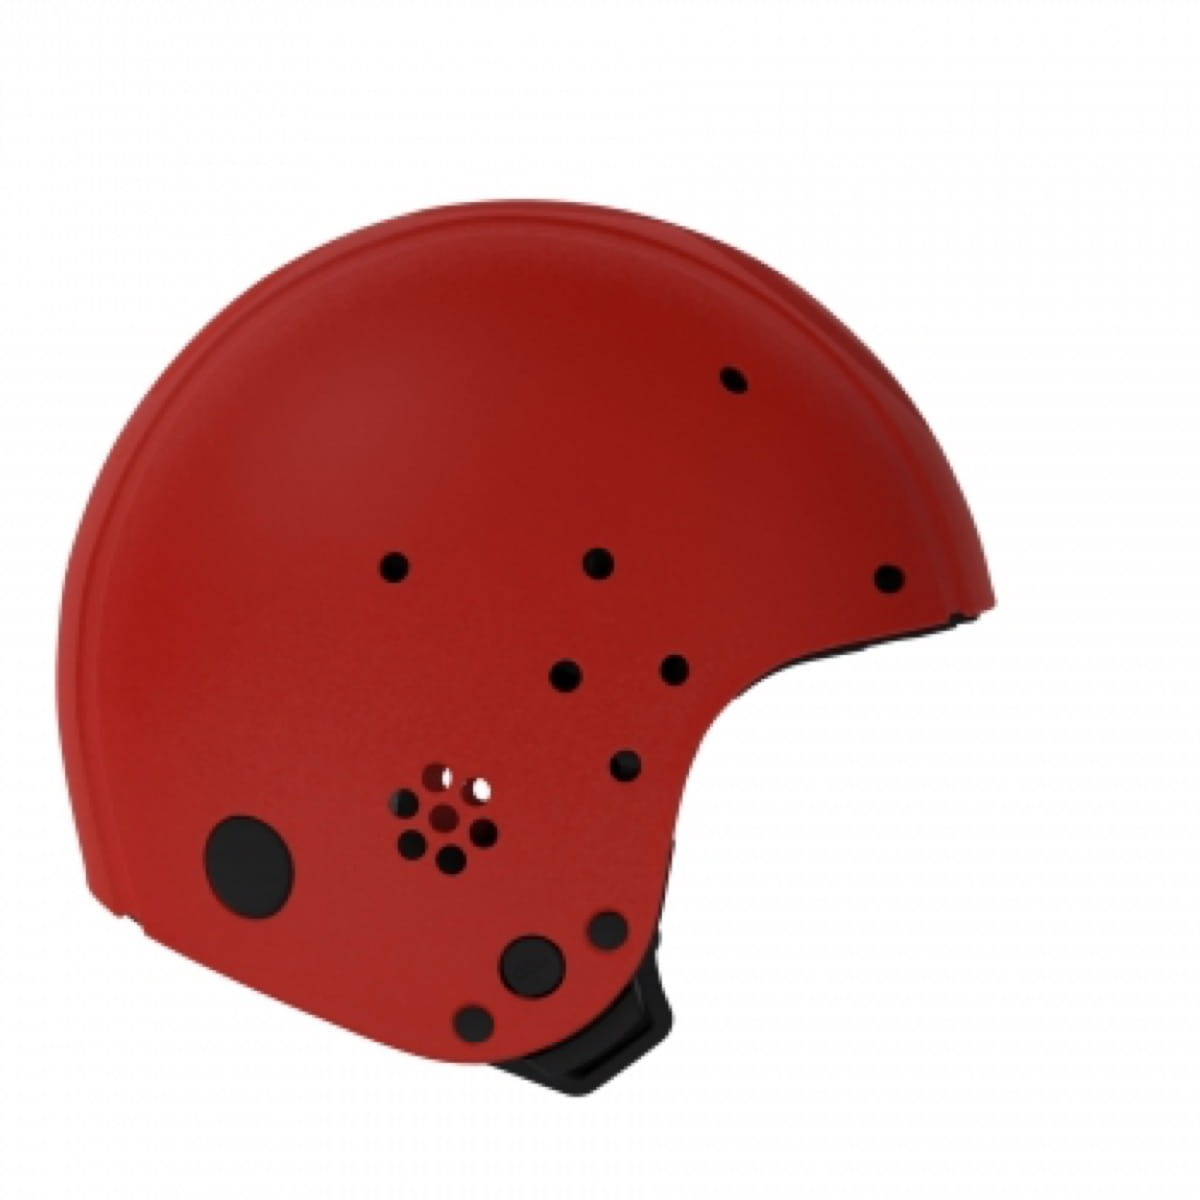 Egg Helmet 2 Red Medium